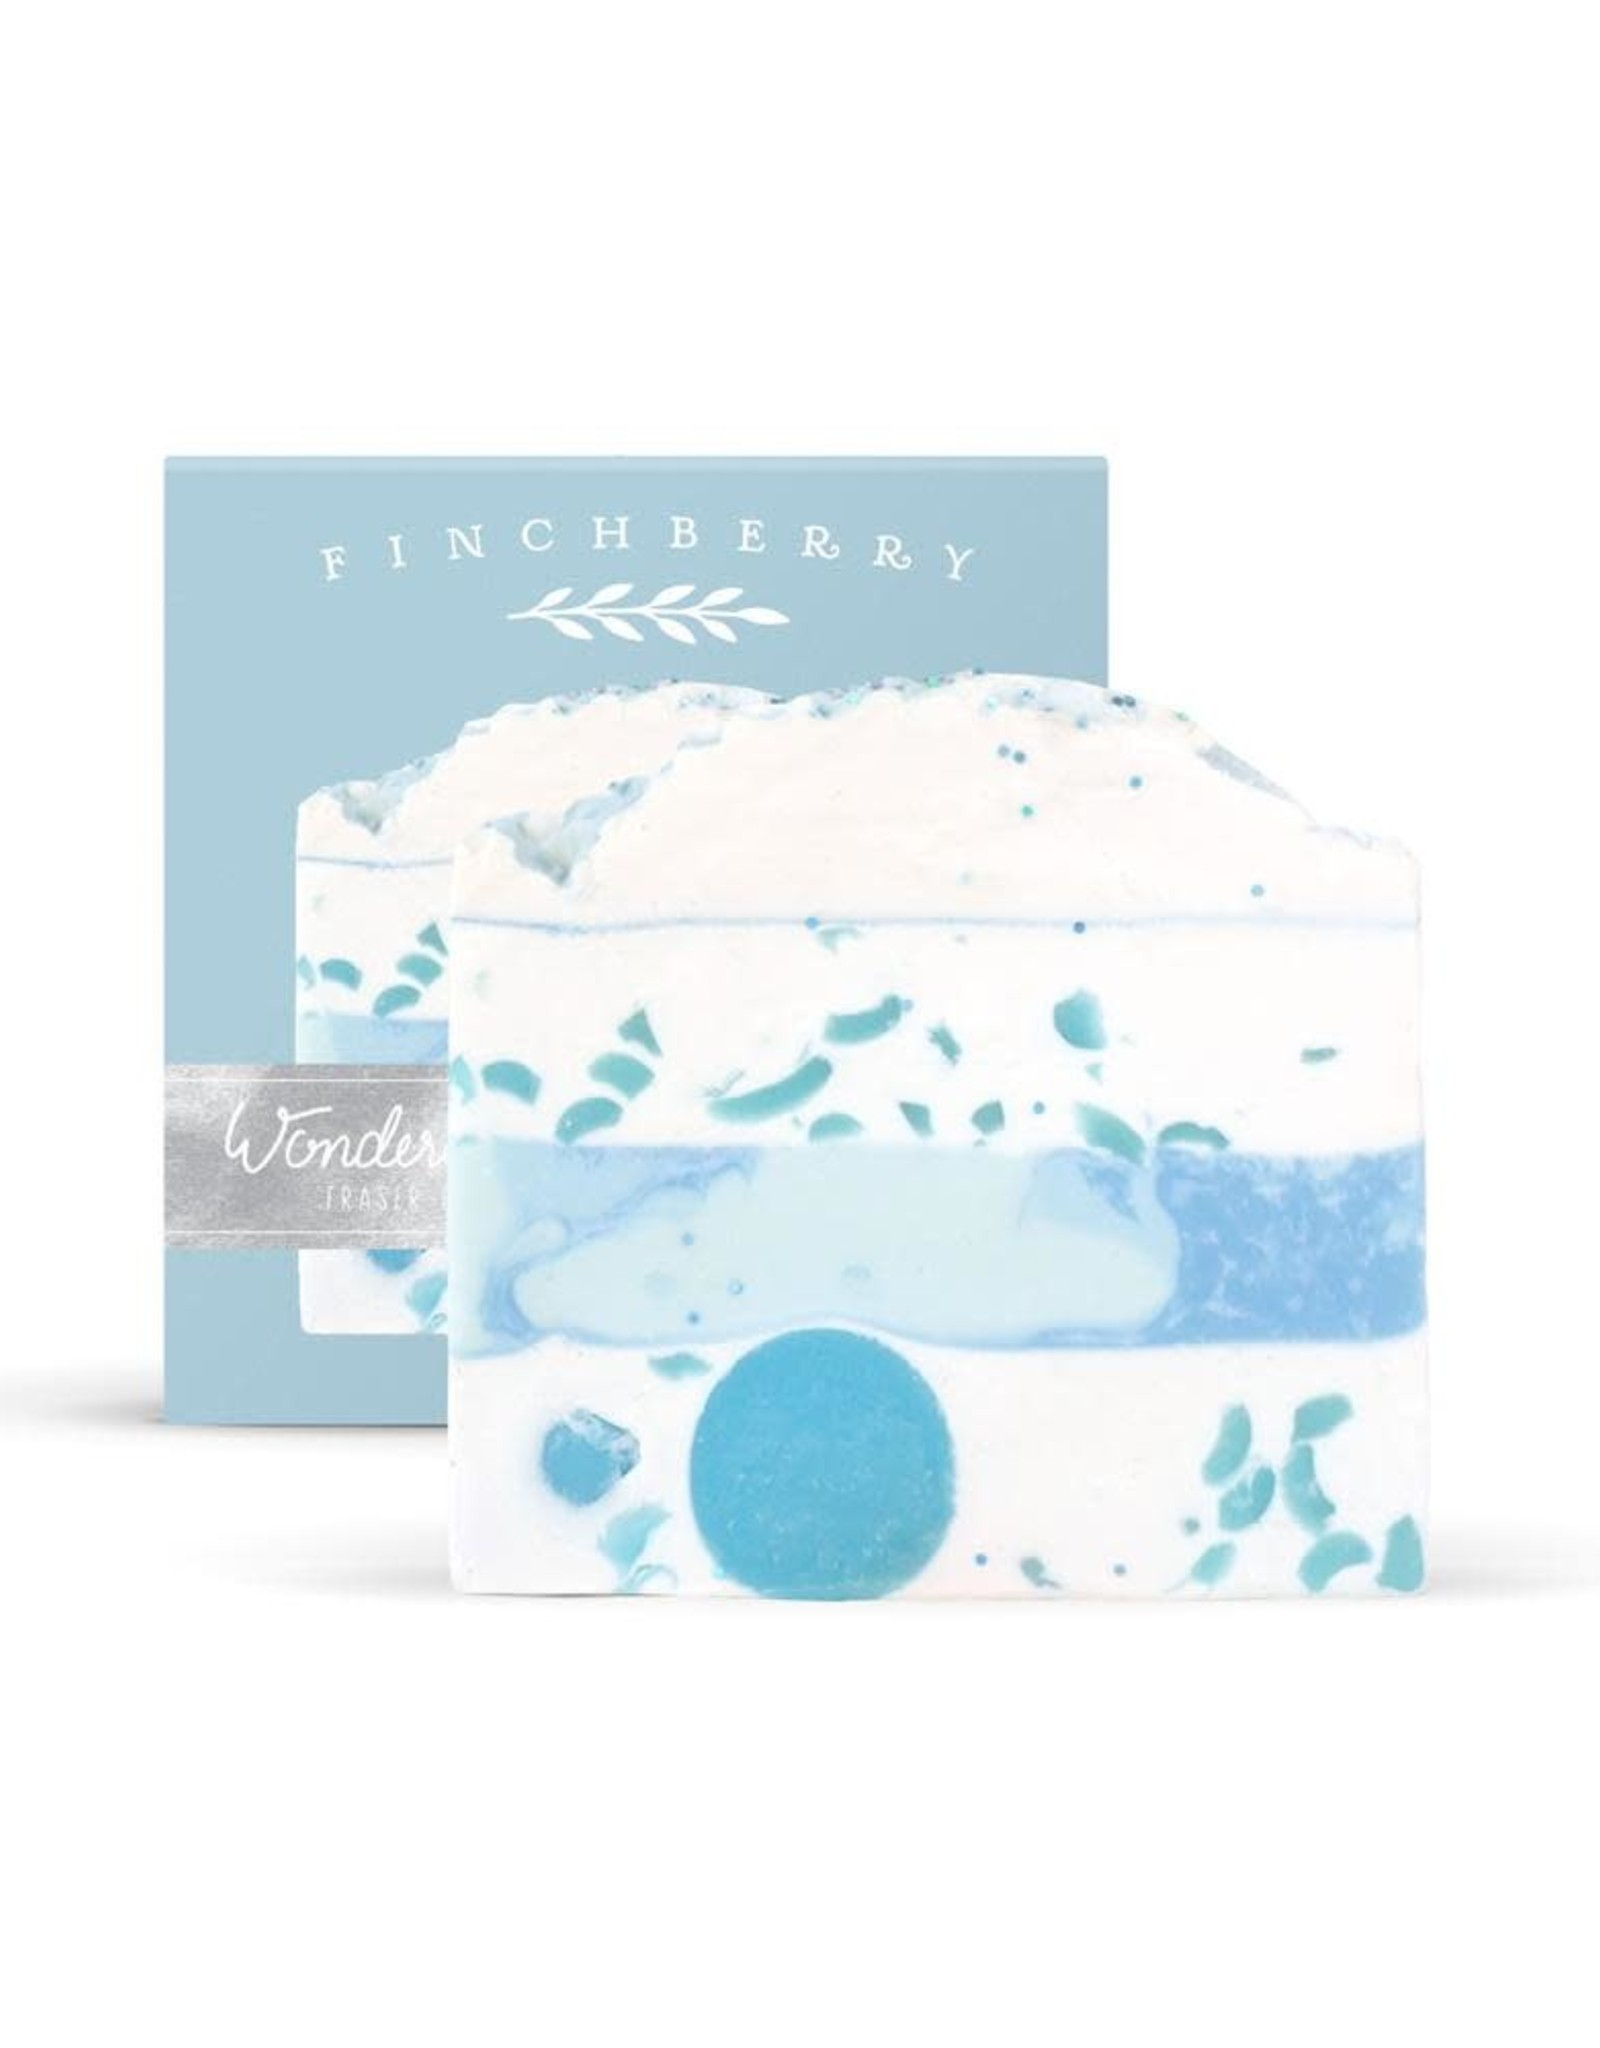 FinchBerry Soapery Wonderland Holiday Boxed Set